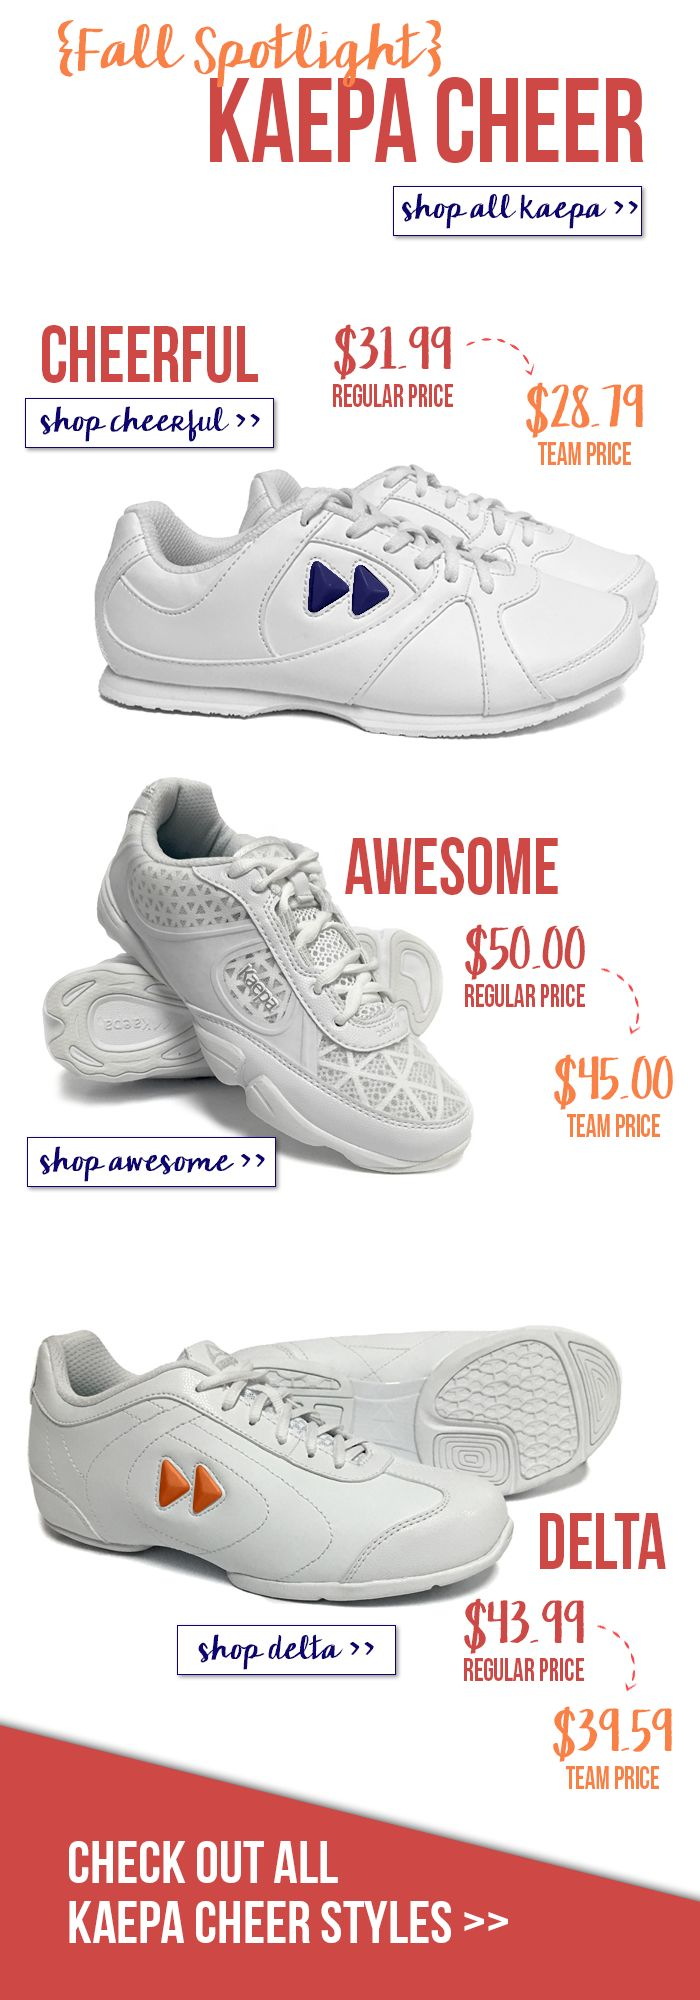 From Budget to Performance, Cheerleading shoes by kaepa are seriously perfect for any cheer level